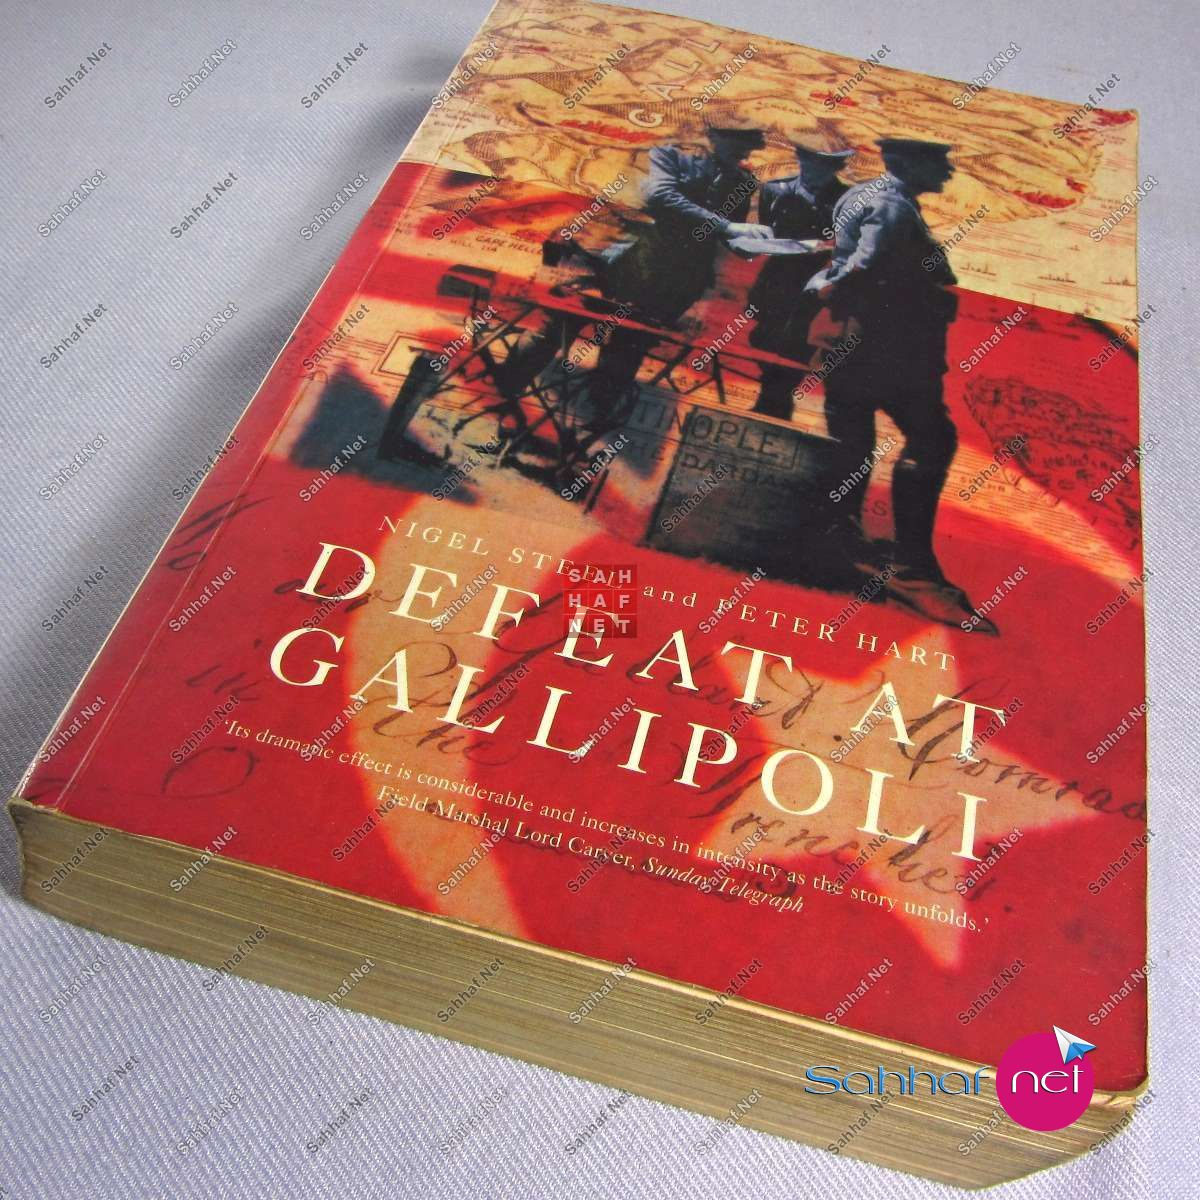 DEFEAT AT GALLIPOLI – Nigel Steel Kitap